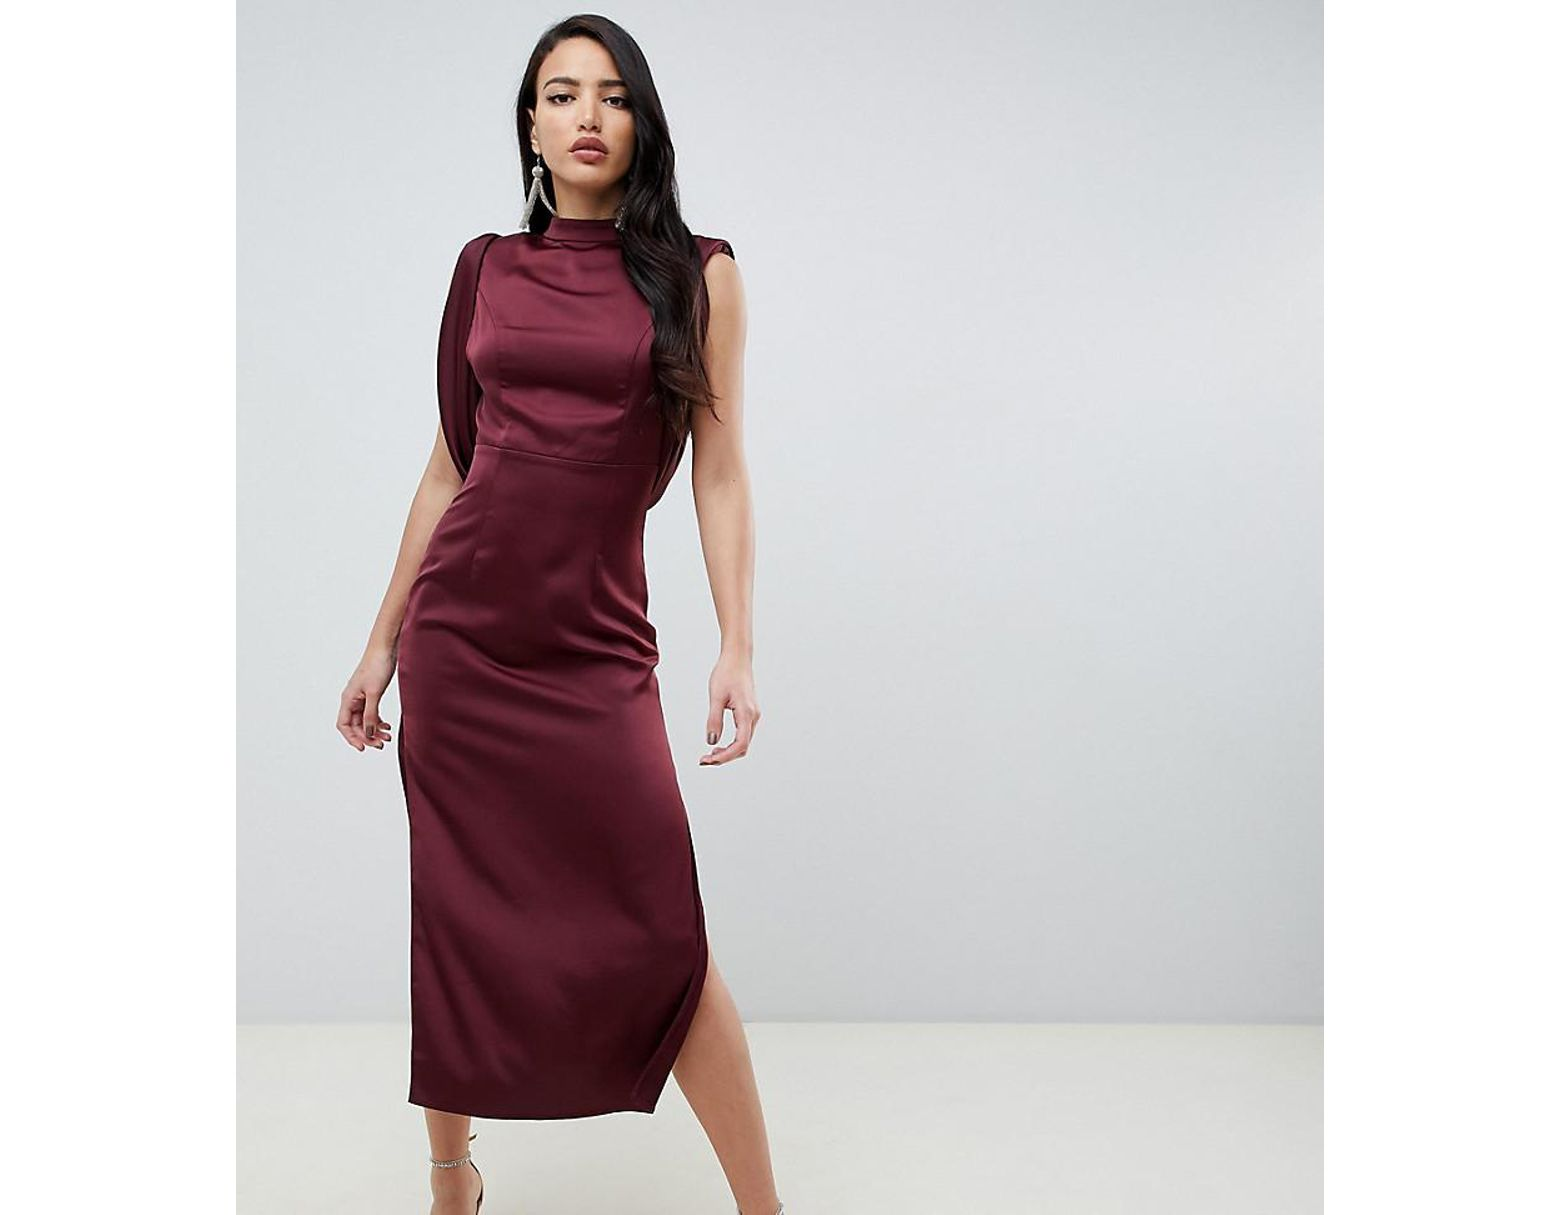 e63519d588e5 ASOS Asos Design Tall Satin Midi Dress With Drape Armhole And Side Split in  Red - Lyst